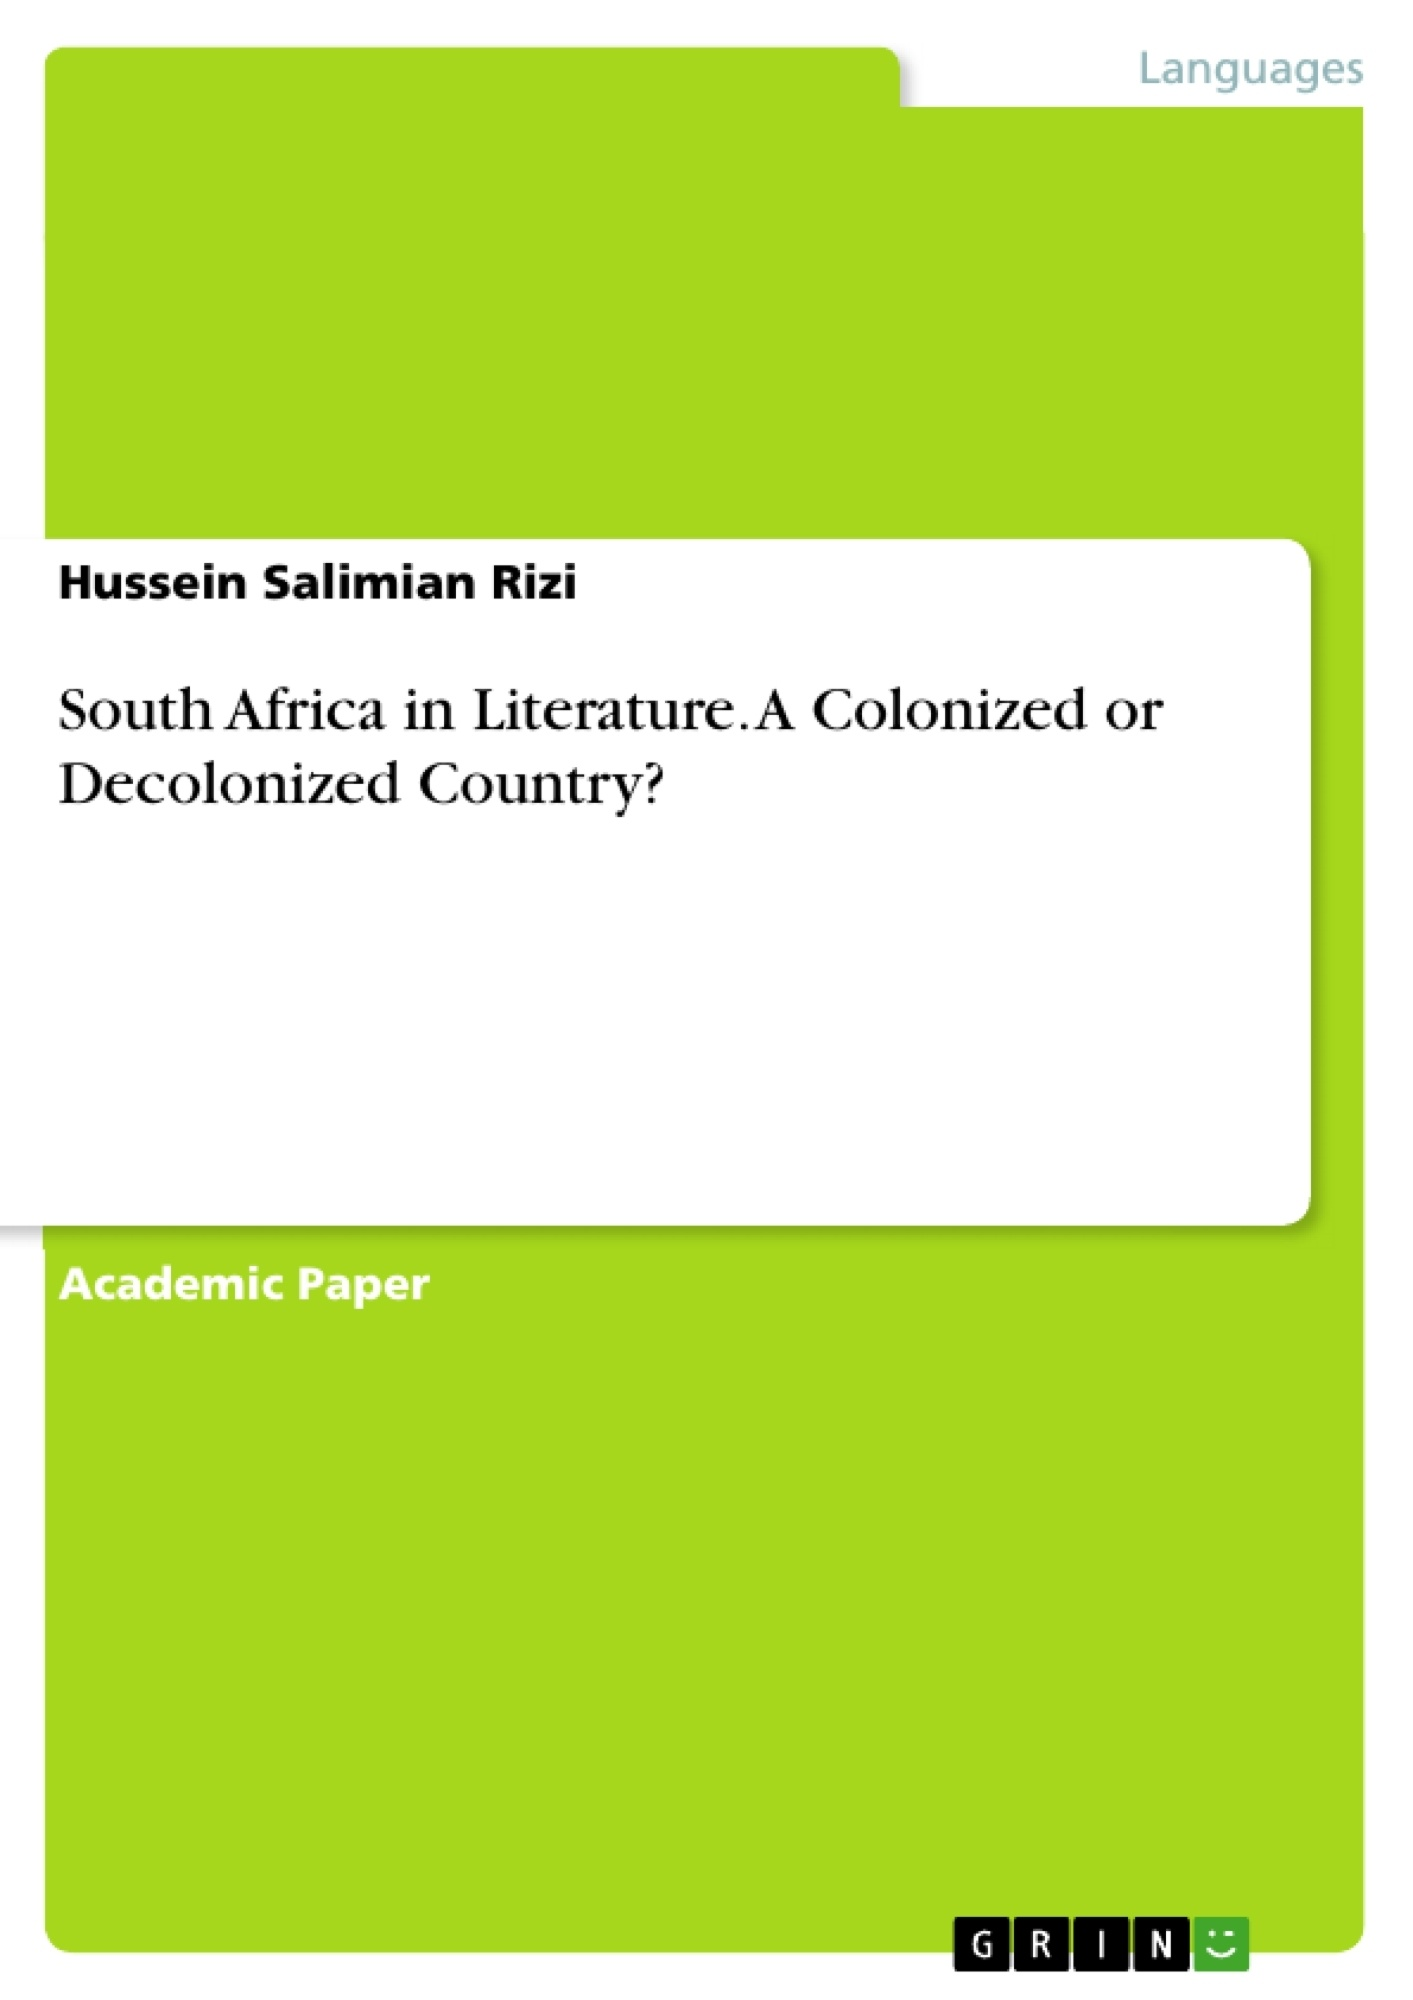 Title: South Africa in Literature. A Colonized or Decolonized Country?